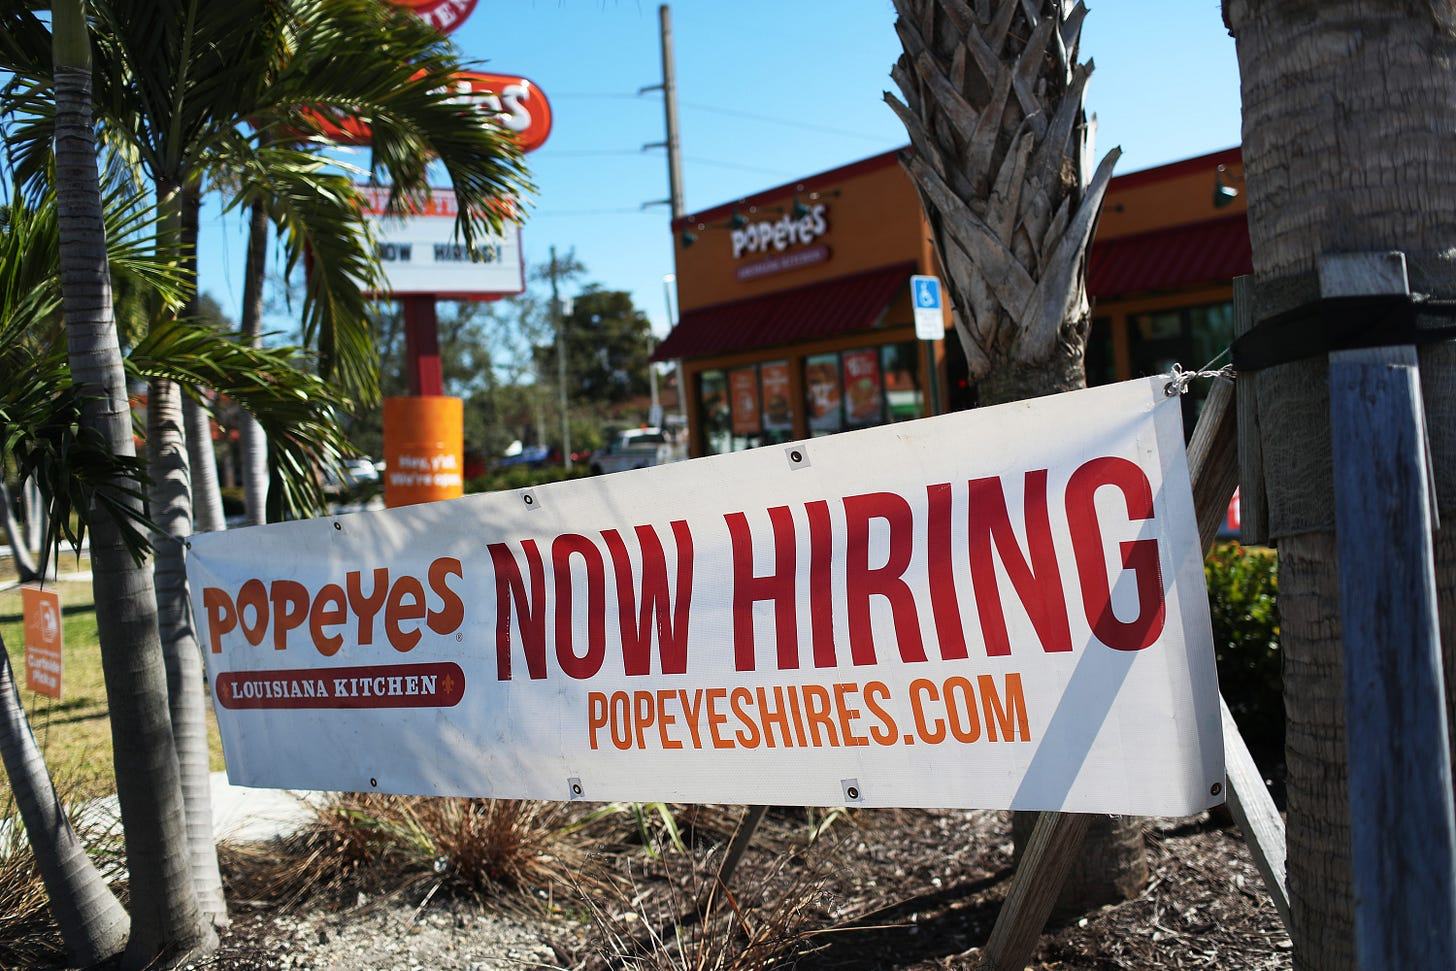 A 'Now Hiring' sign hangs in front of a Popeye's restaurant on February 04, 2021 in Miami, Florida